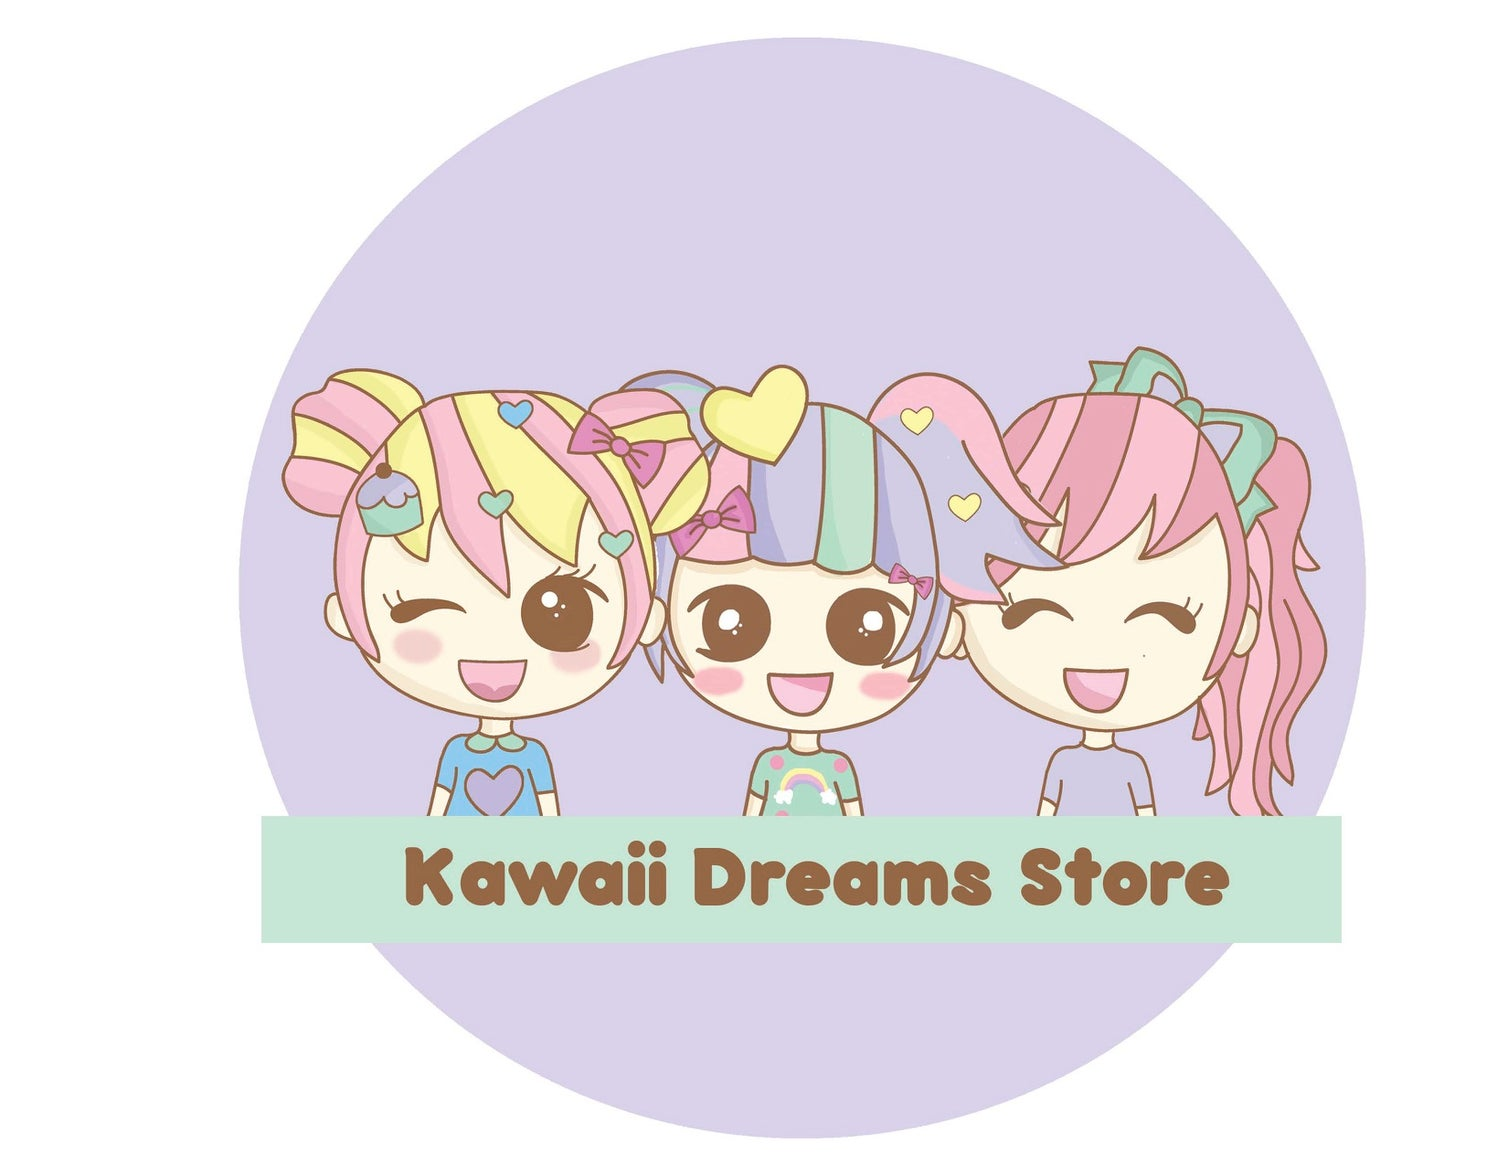 Kawaii Dreams Store